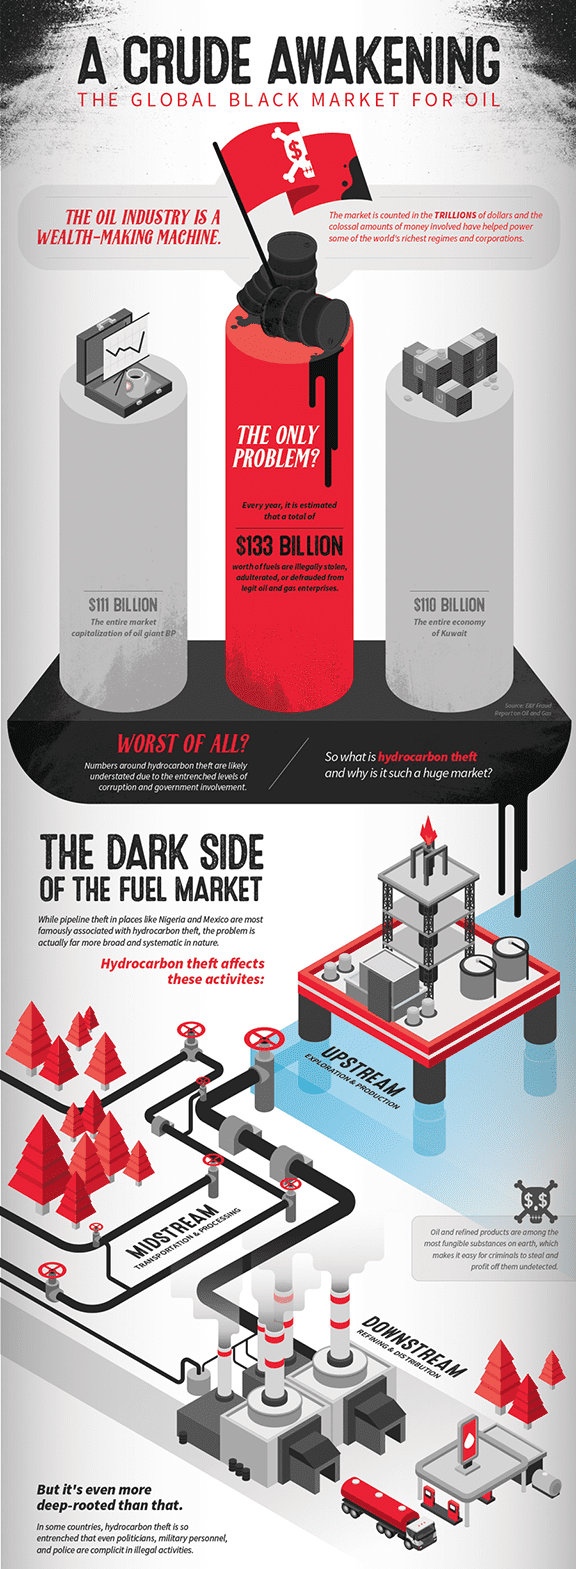 Figure 1. Economic Dimensions of Oil Theft in Selected Countries. Click to view full infographic. Source: www.visualcapitalist.com/global-black-market-fuel-theft [5]